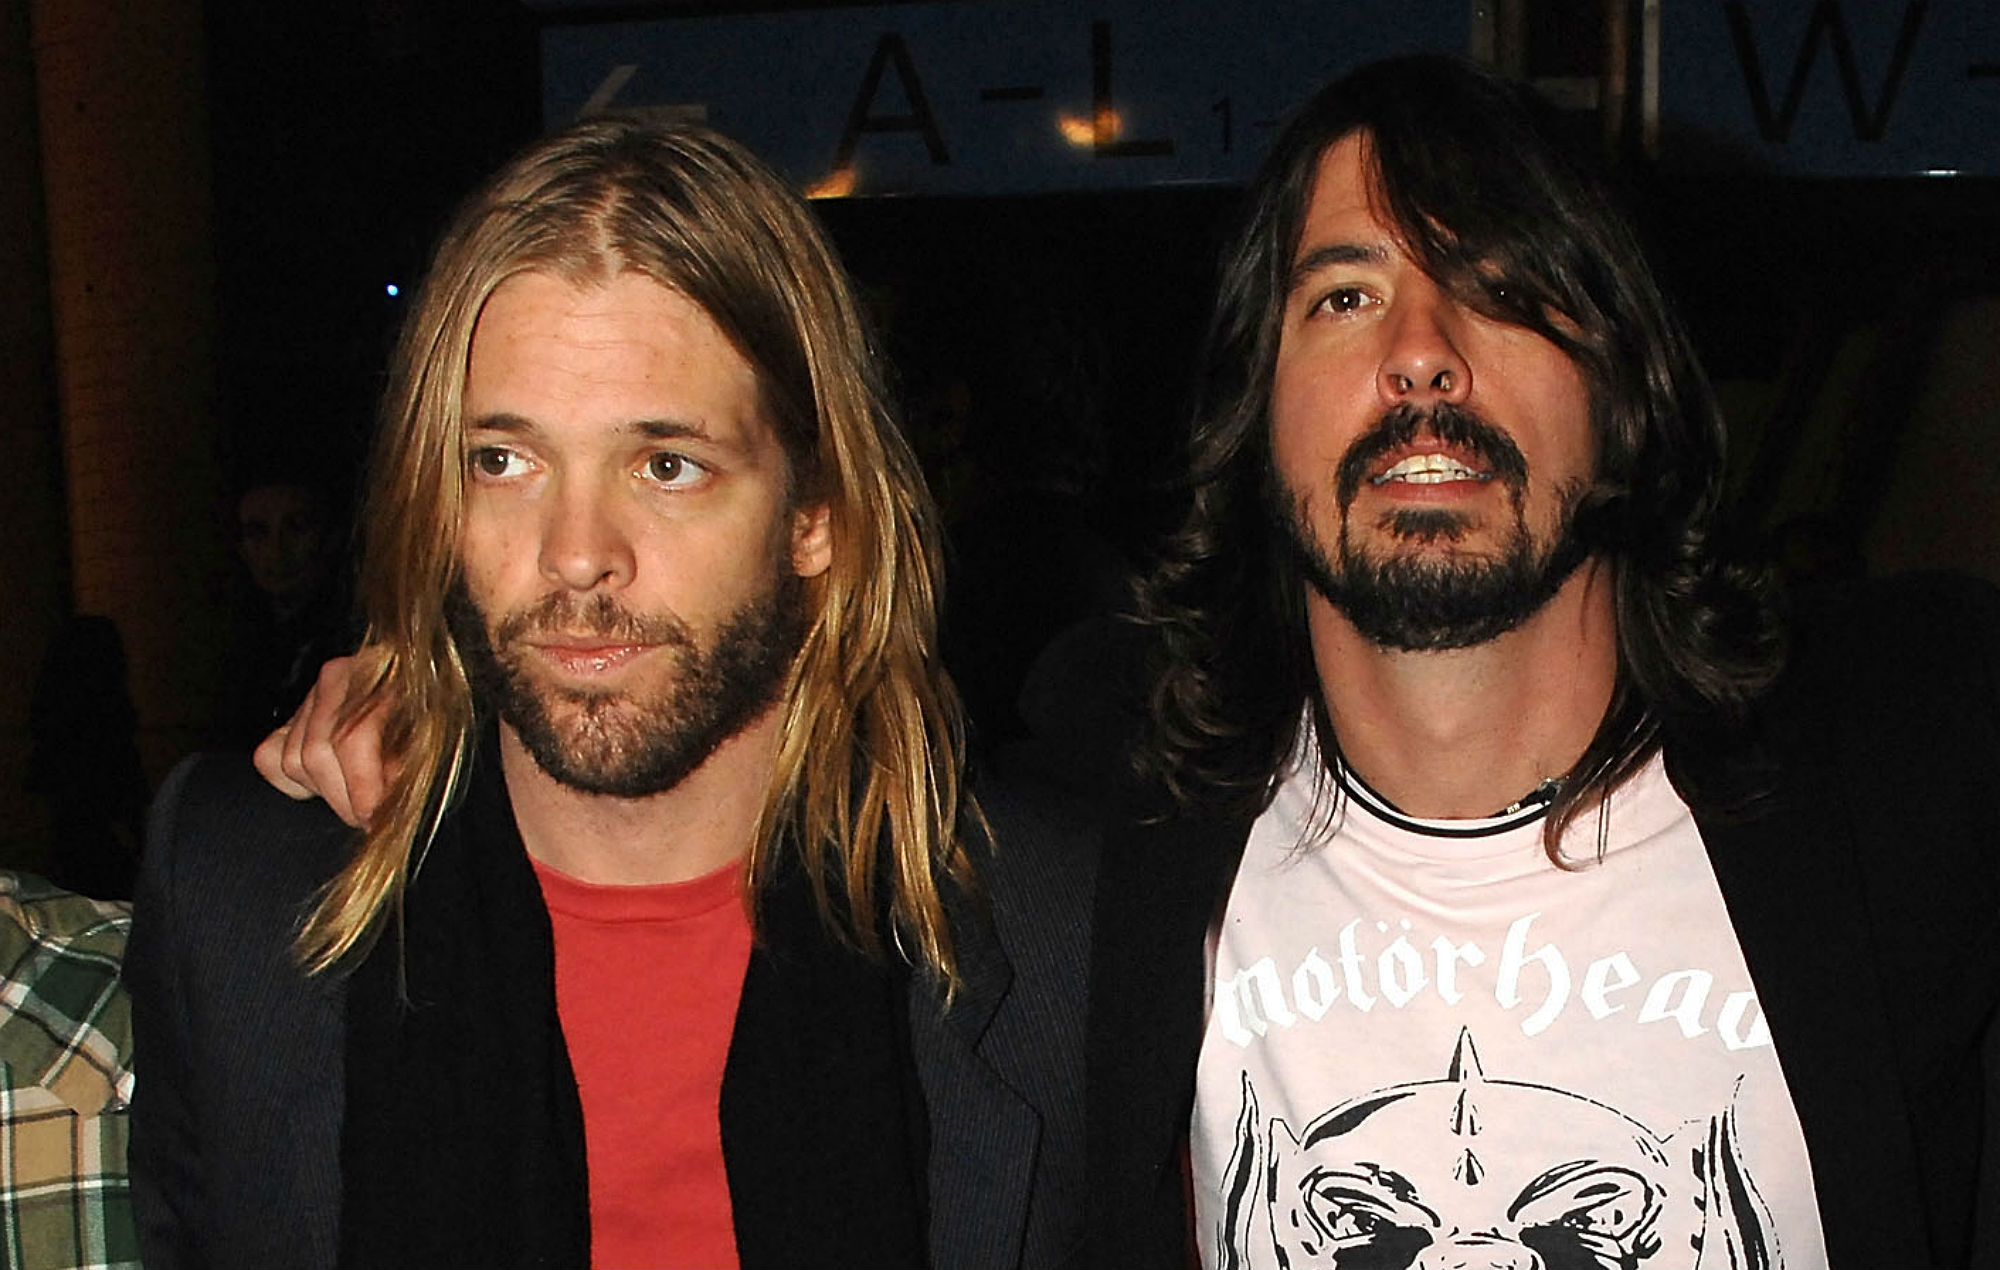 Listen to Taylor Hawkins & The Coattail Riders' Dave Grohl collaboration 'Middle Child'